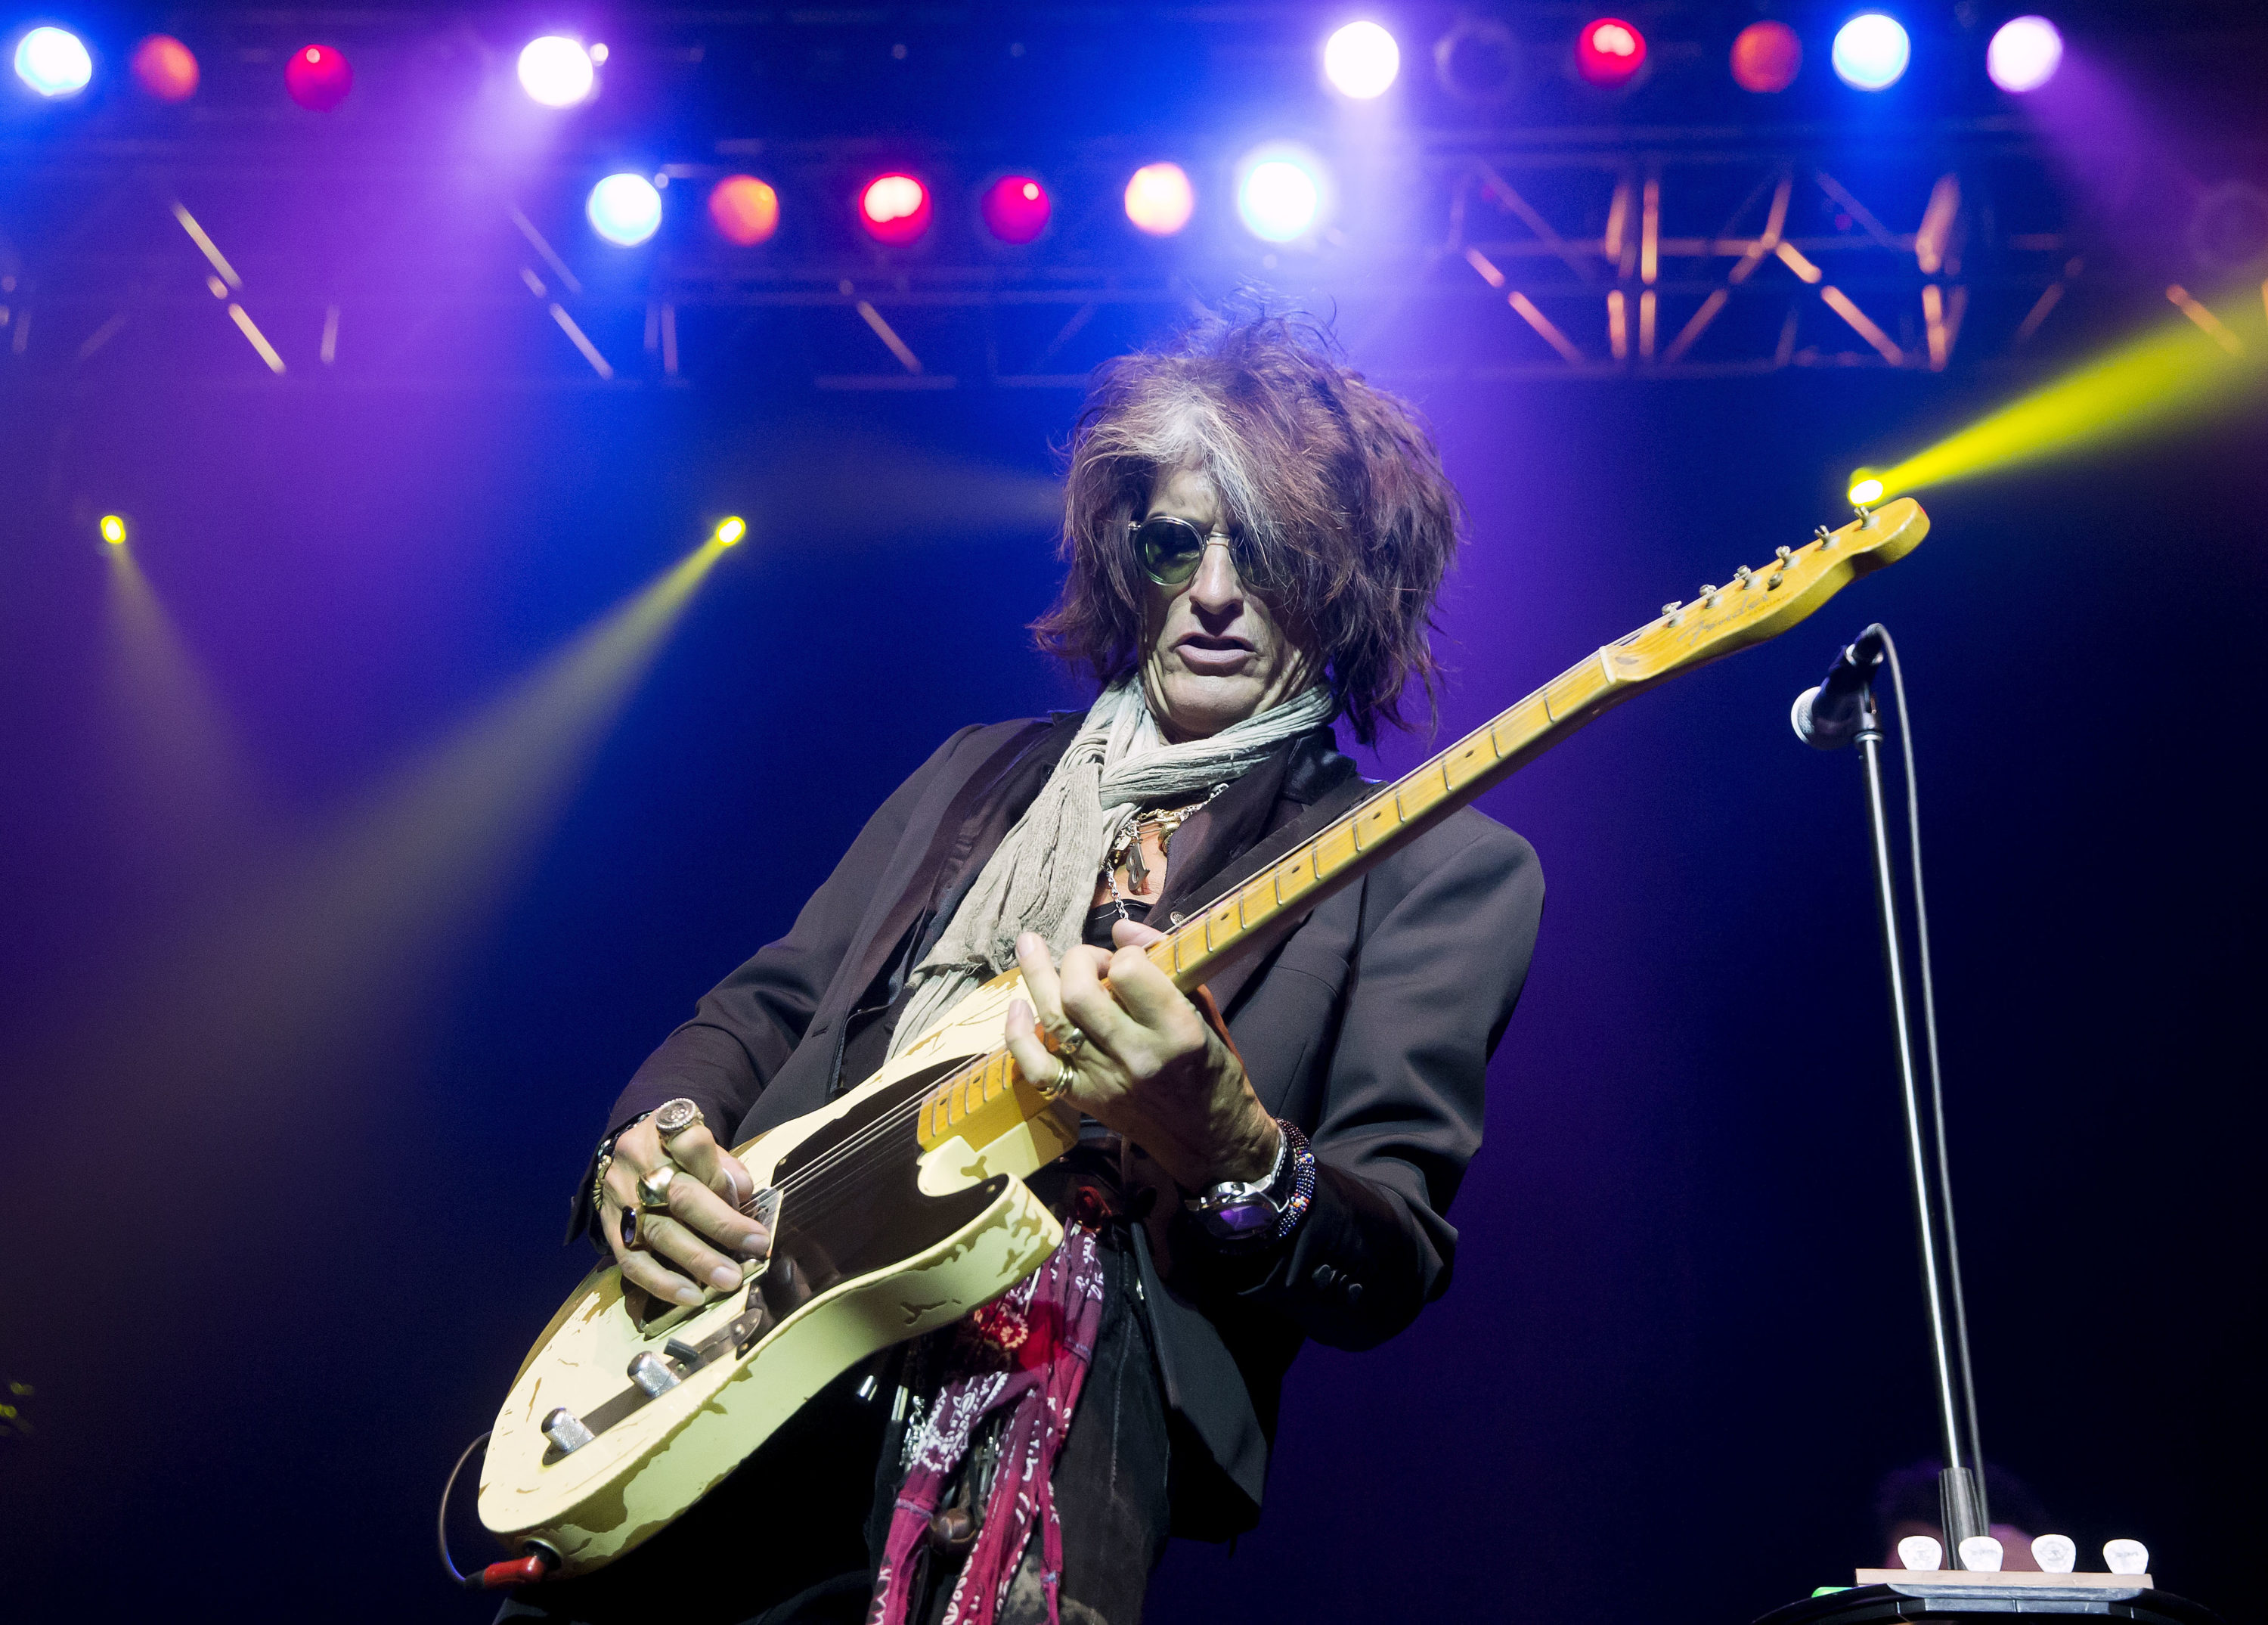 Aerosmith S Joe Perry On Life During The Coronavirus Pandemic The Artery Joe perry is a 70 year old american musician. https www wbur org artery 2020 05 05 aerosmiths joe perry on life during the coronavirus pandemic